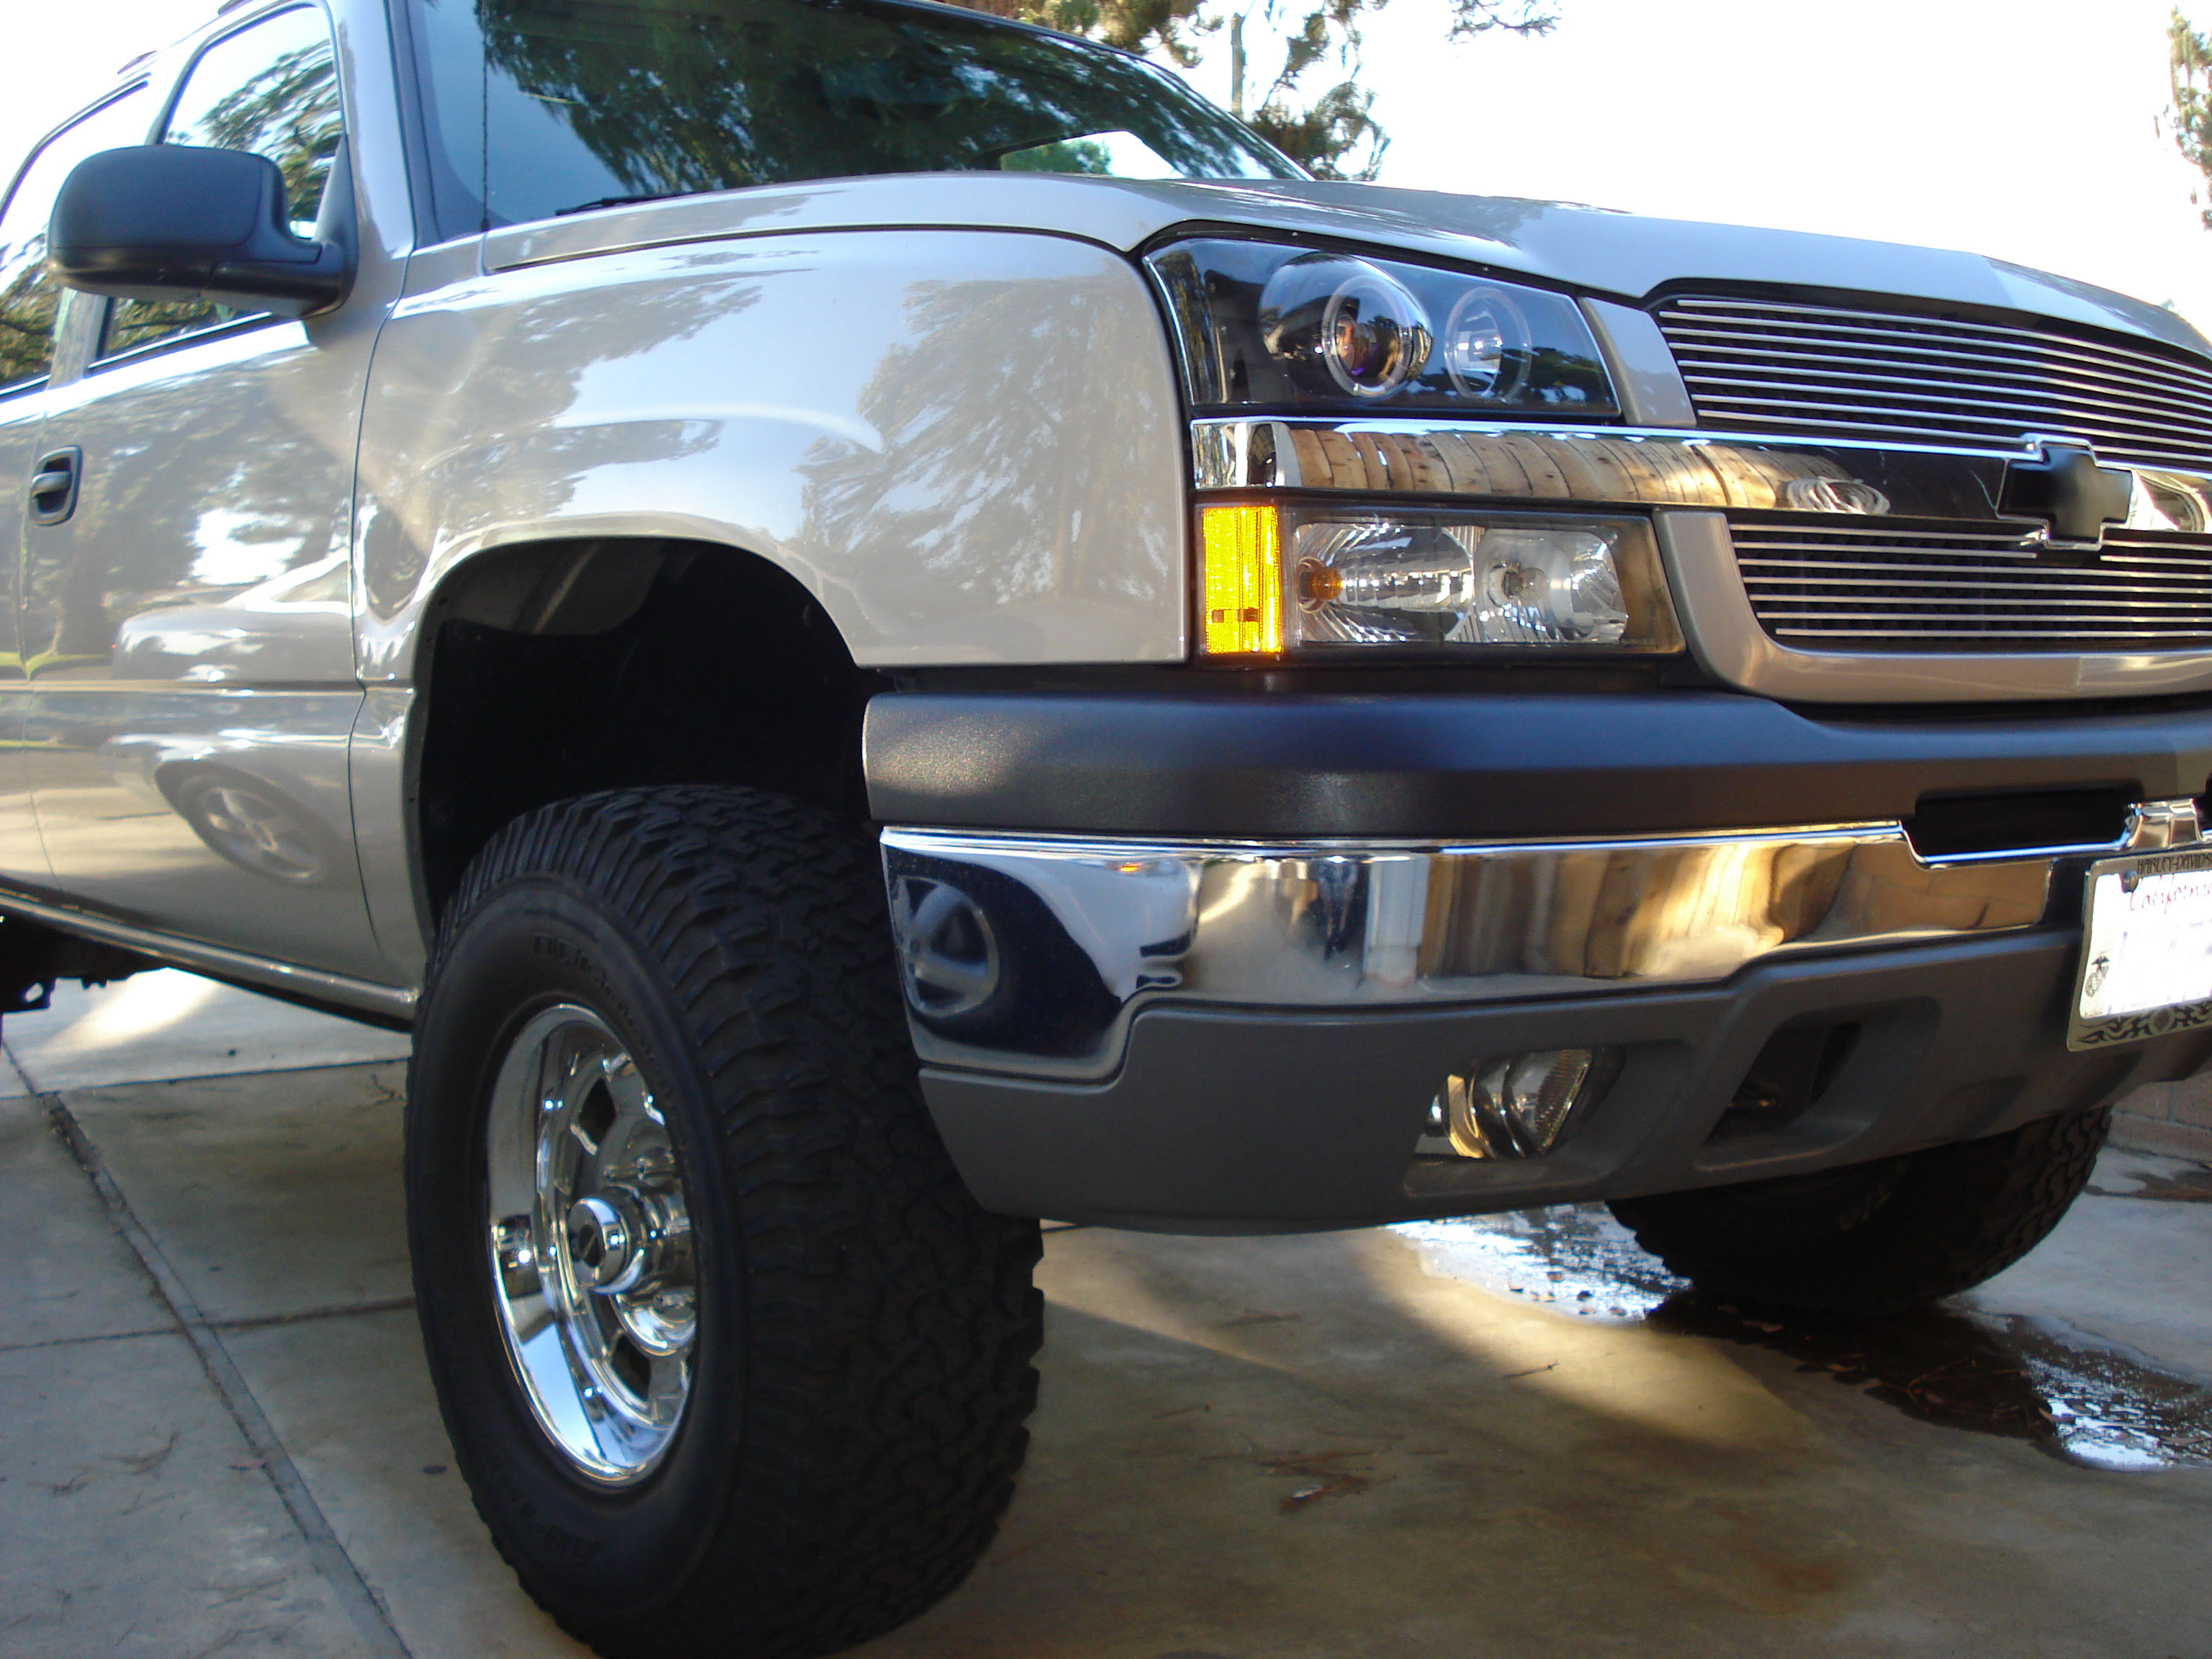 77DAVE 2004 Chevrolet Avalanche 12131842